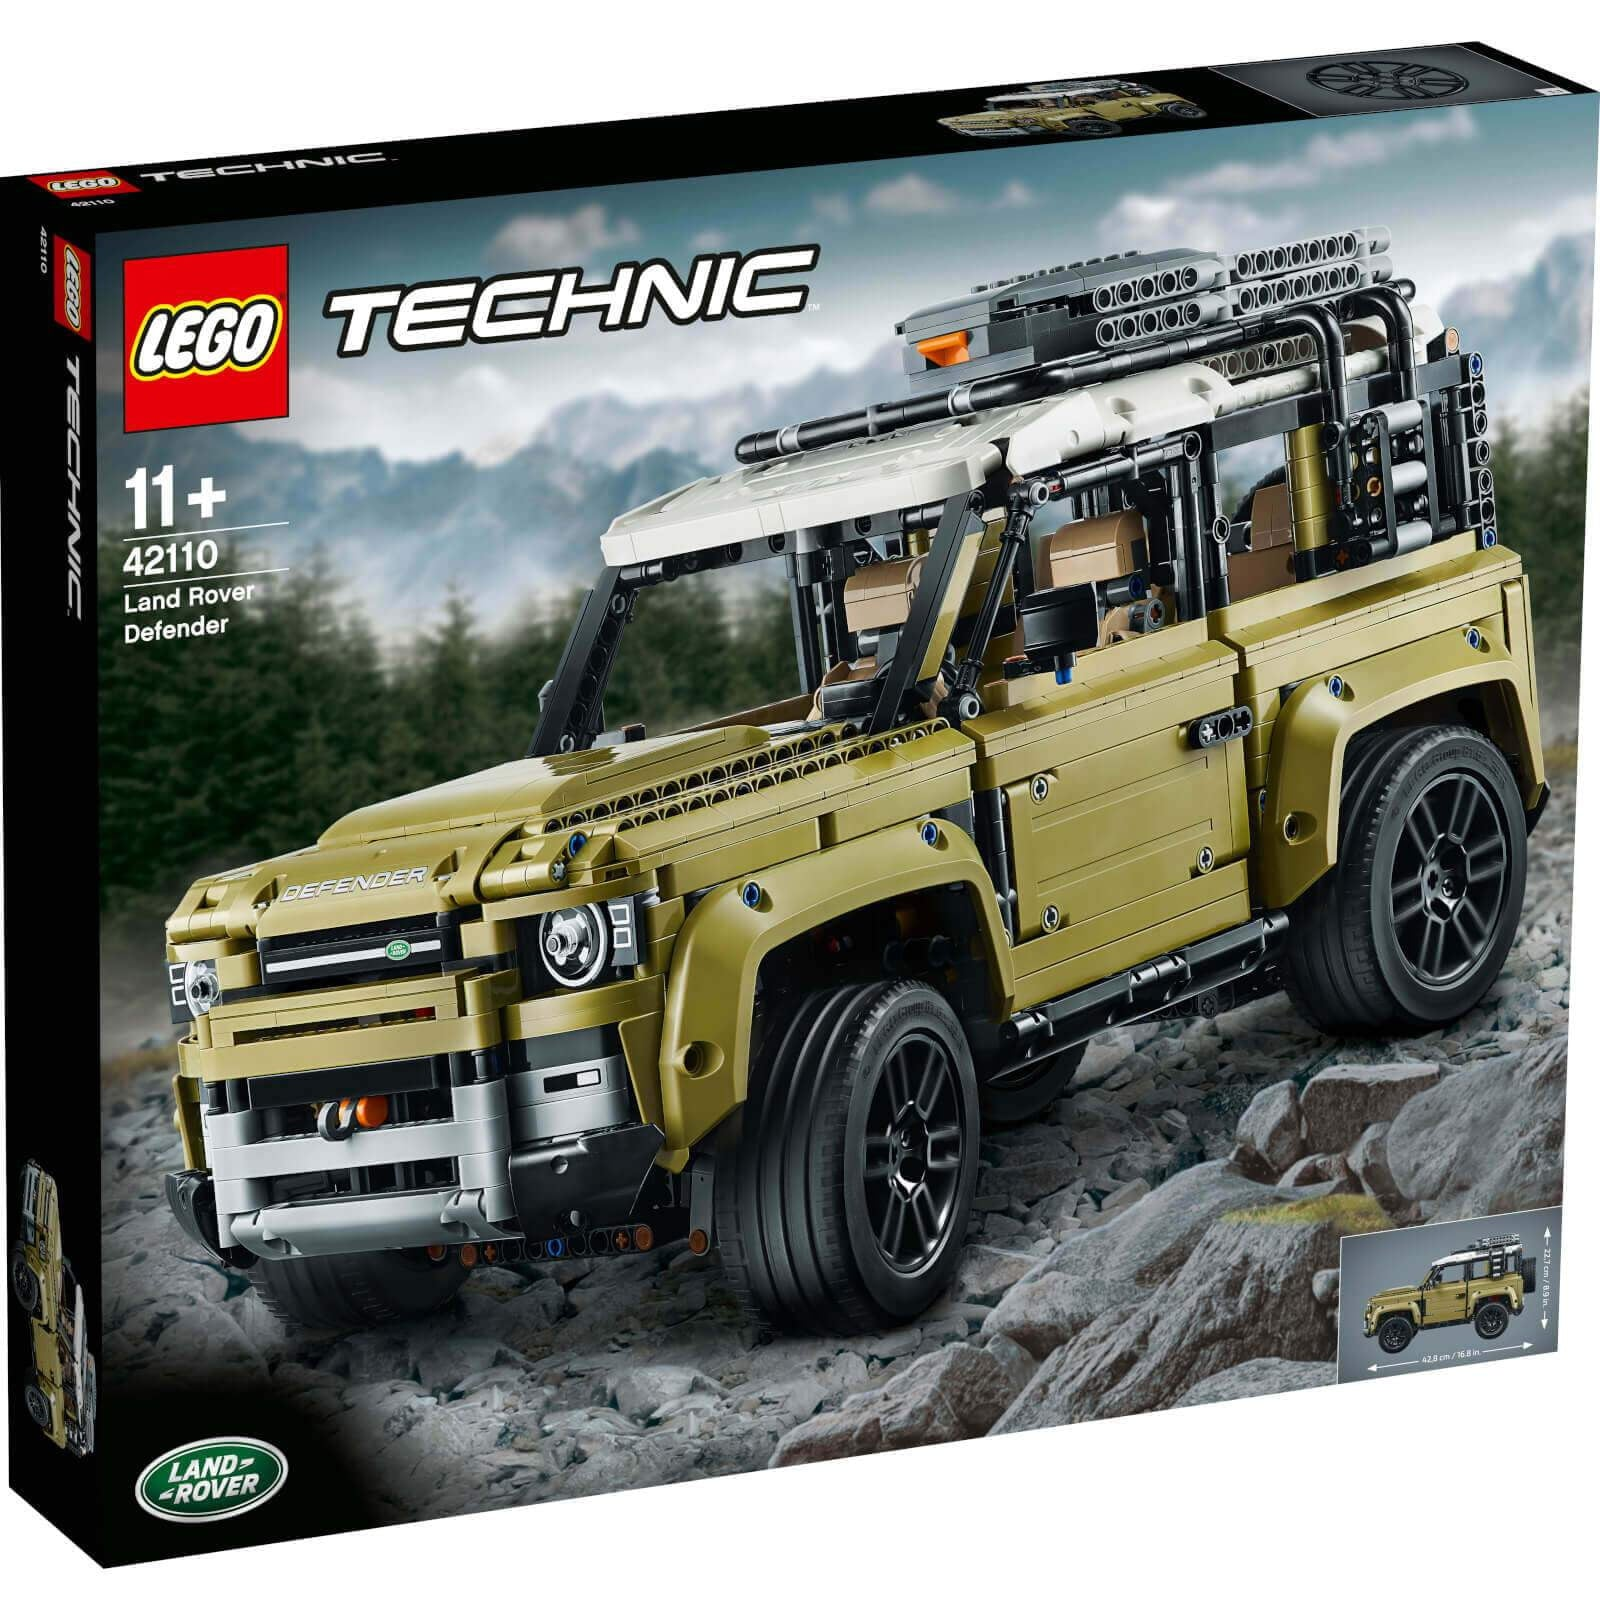 Lego - לגו טכני Technic - 42110 - Land rover - TheBrick.co.il